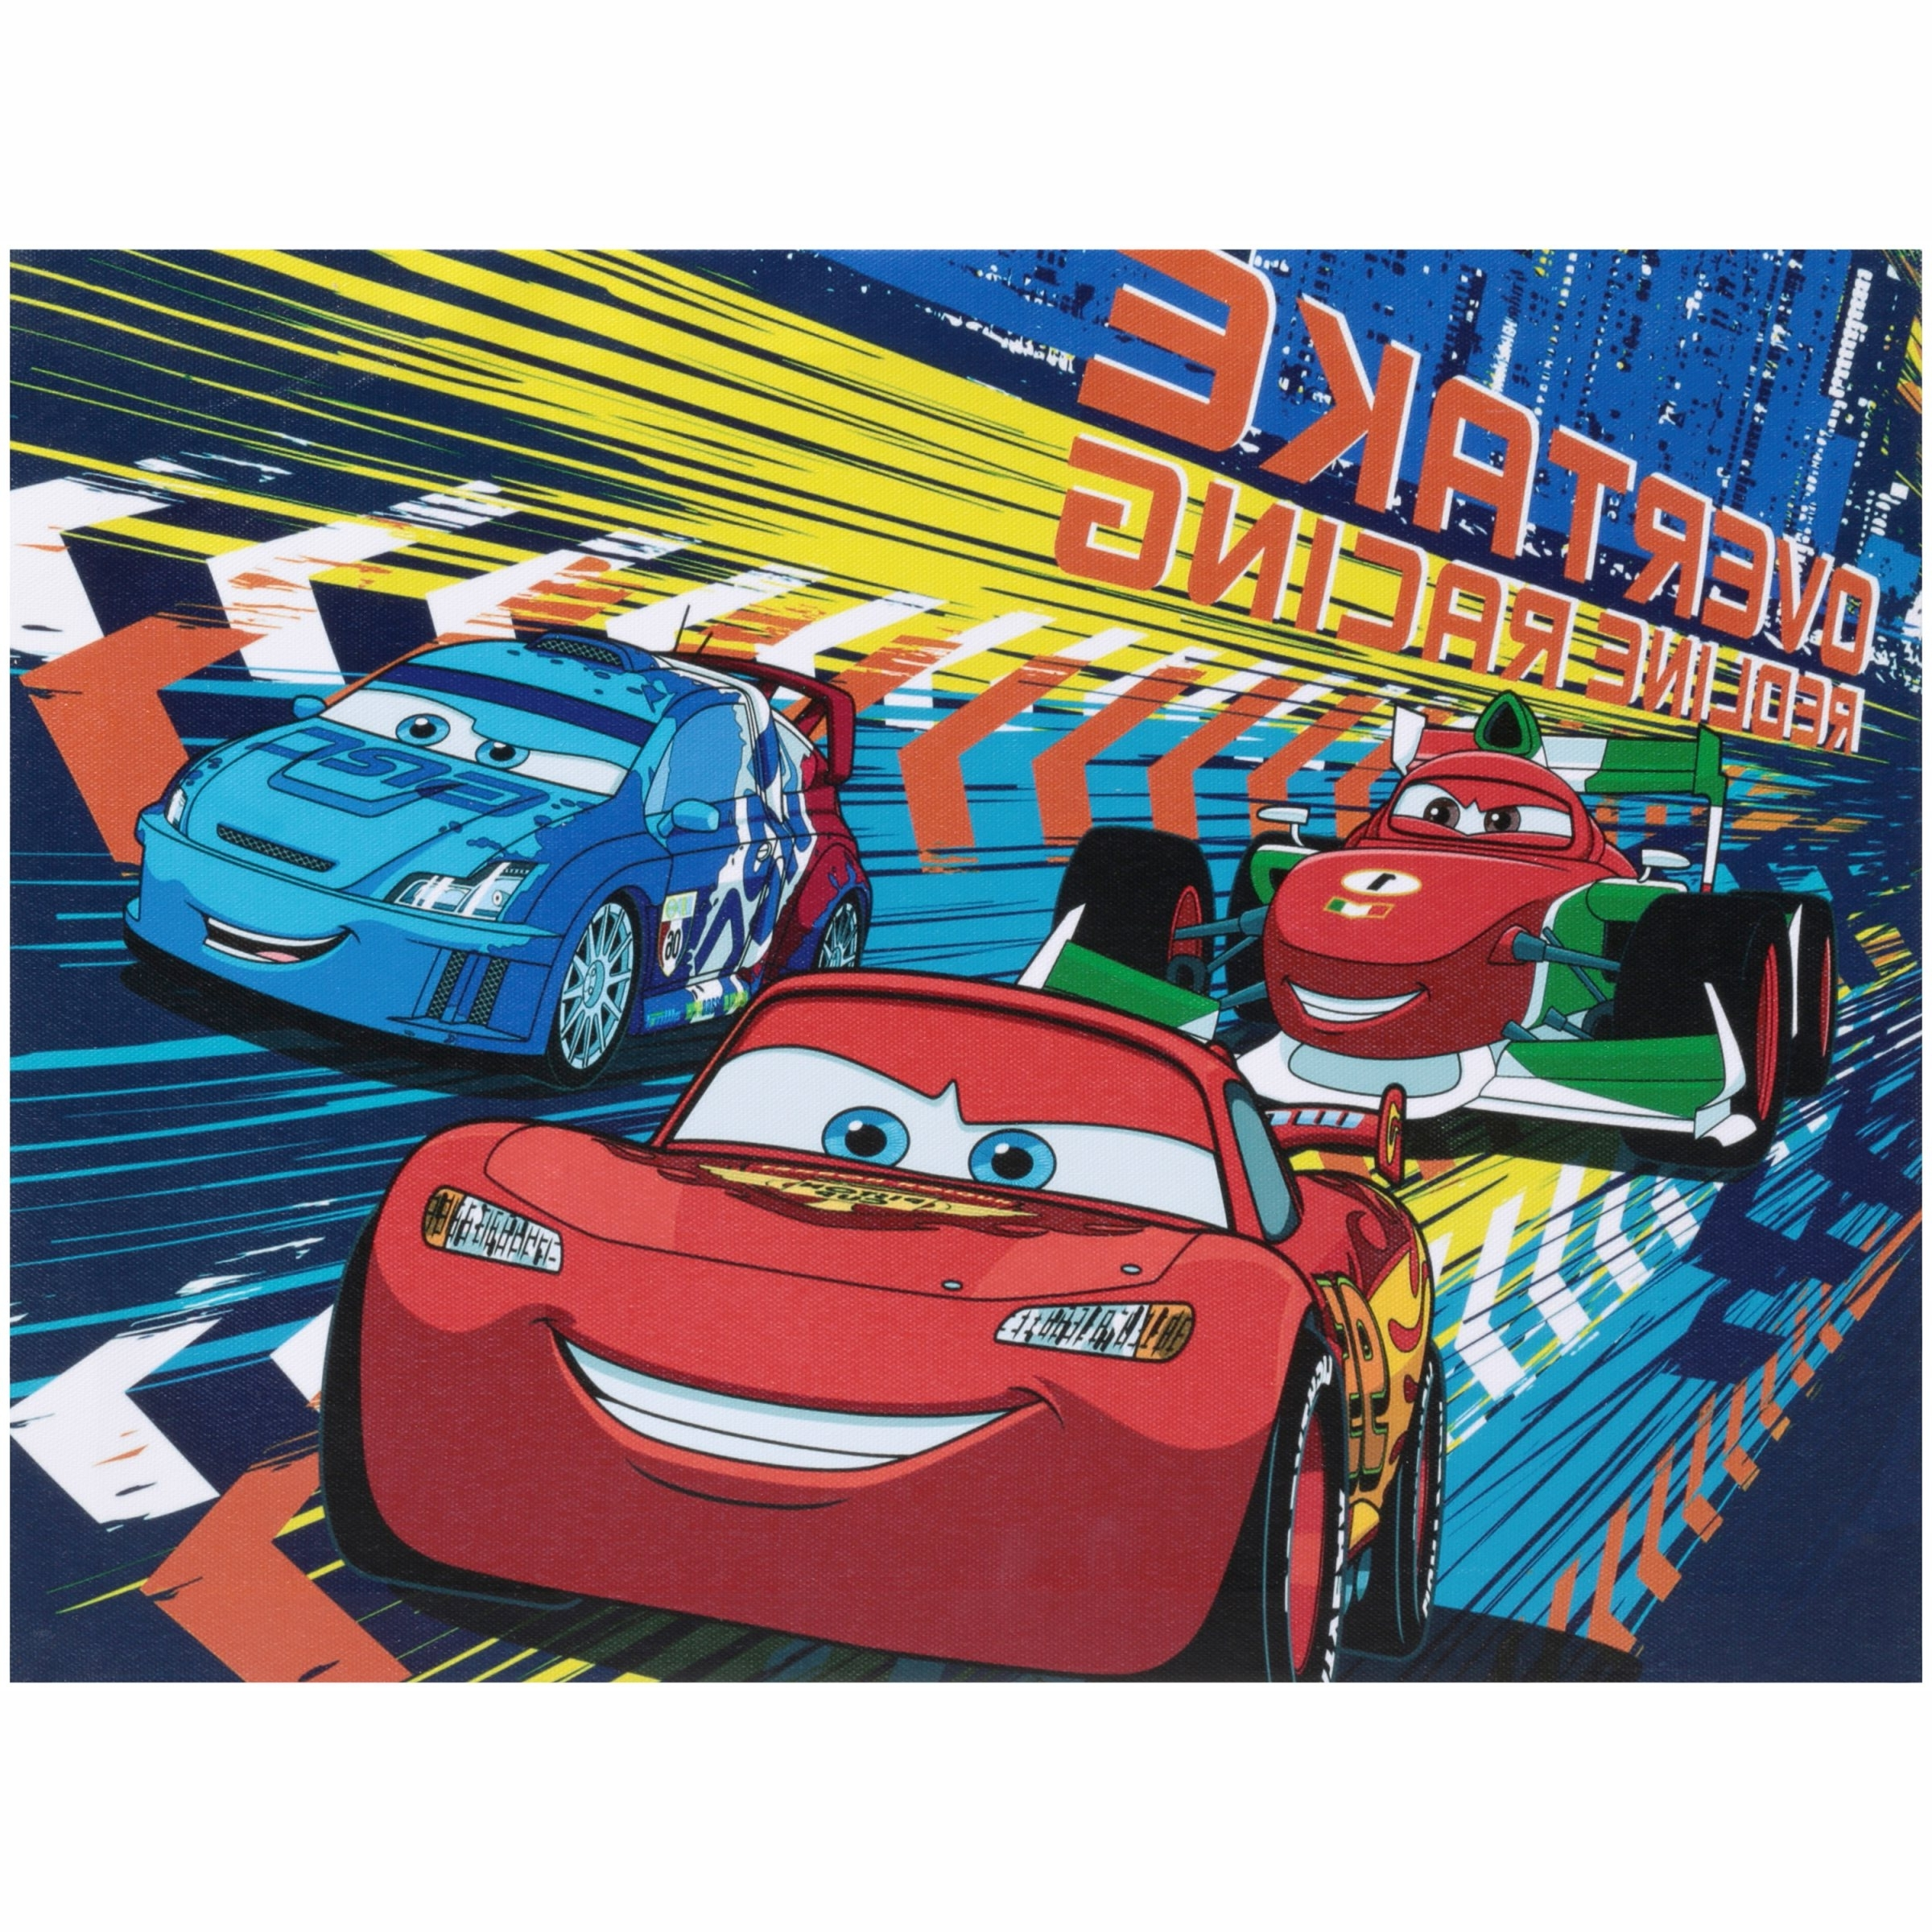 Cars Theme Canvas Wall Art Within Preferred Disney Cars Light Up Canvas Wall Art With Bonus Led Lights (View 7 of 15)